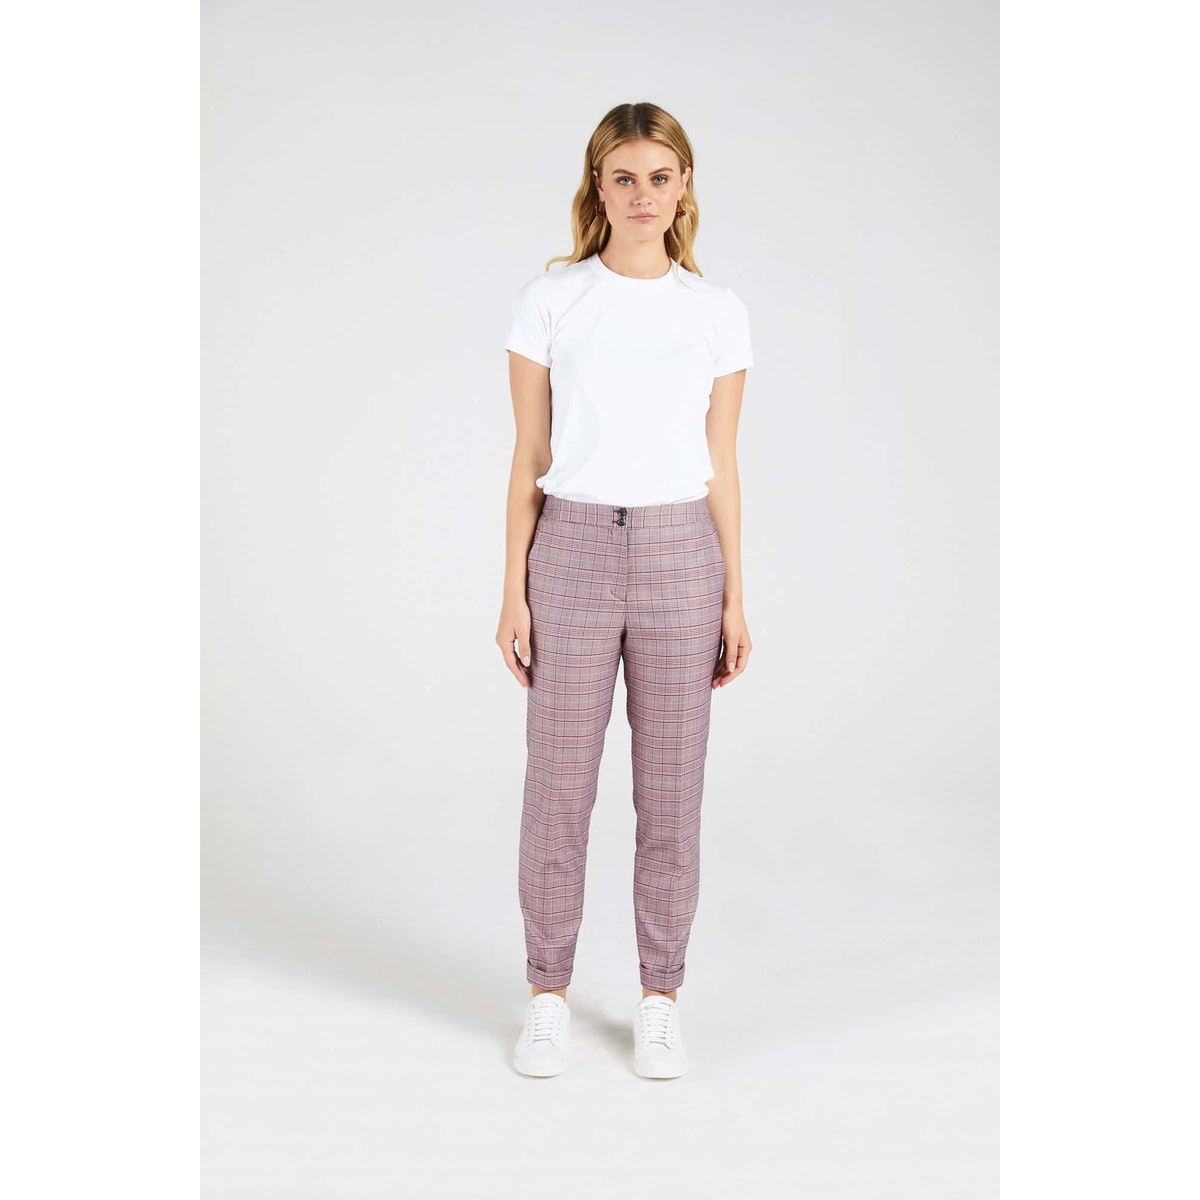 InStitchu Collection The Thomas Pink Glen Plaid Pants